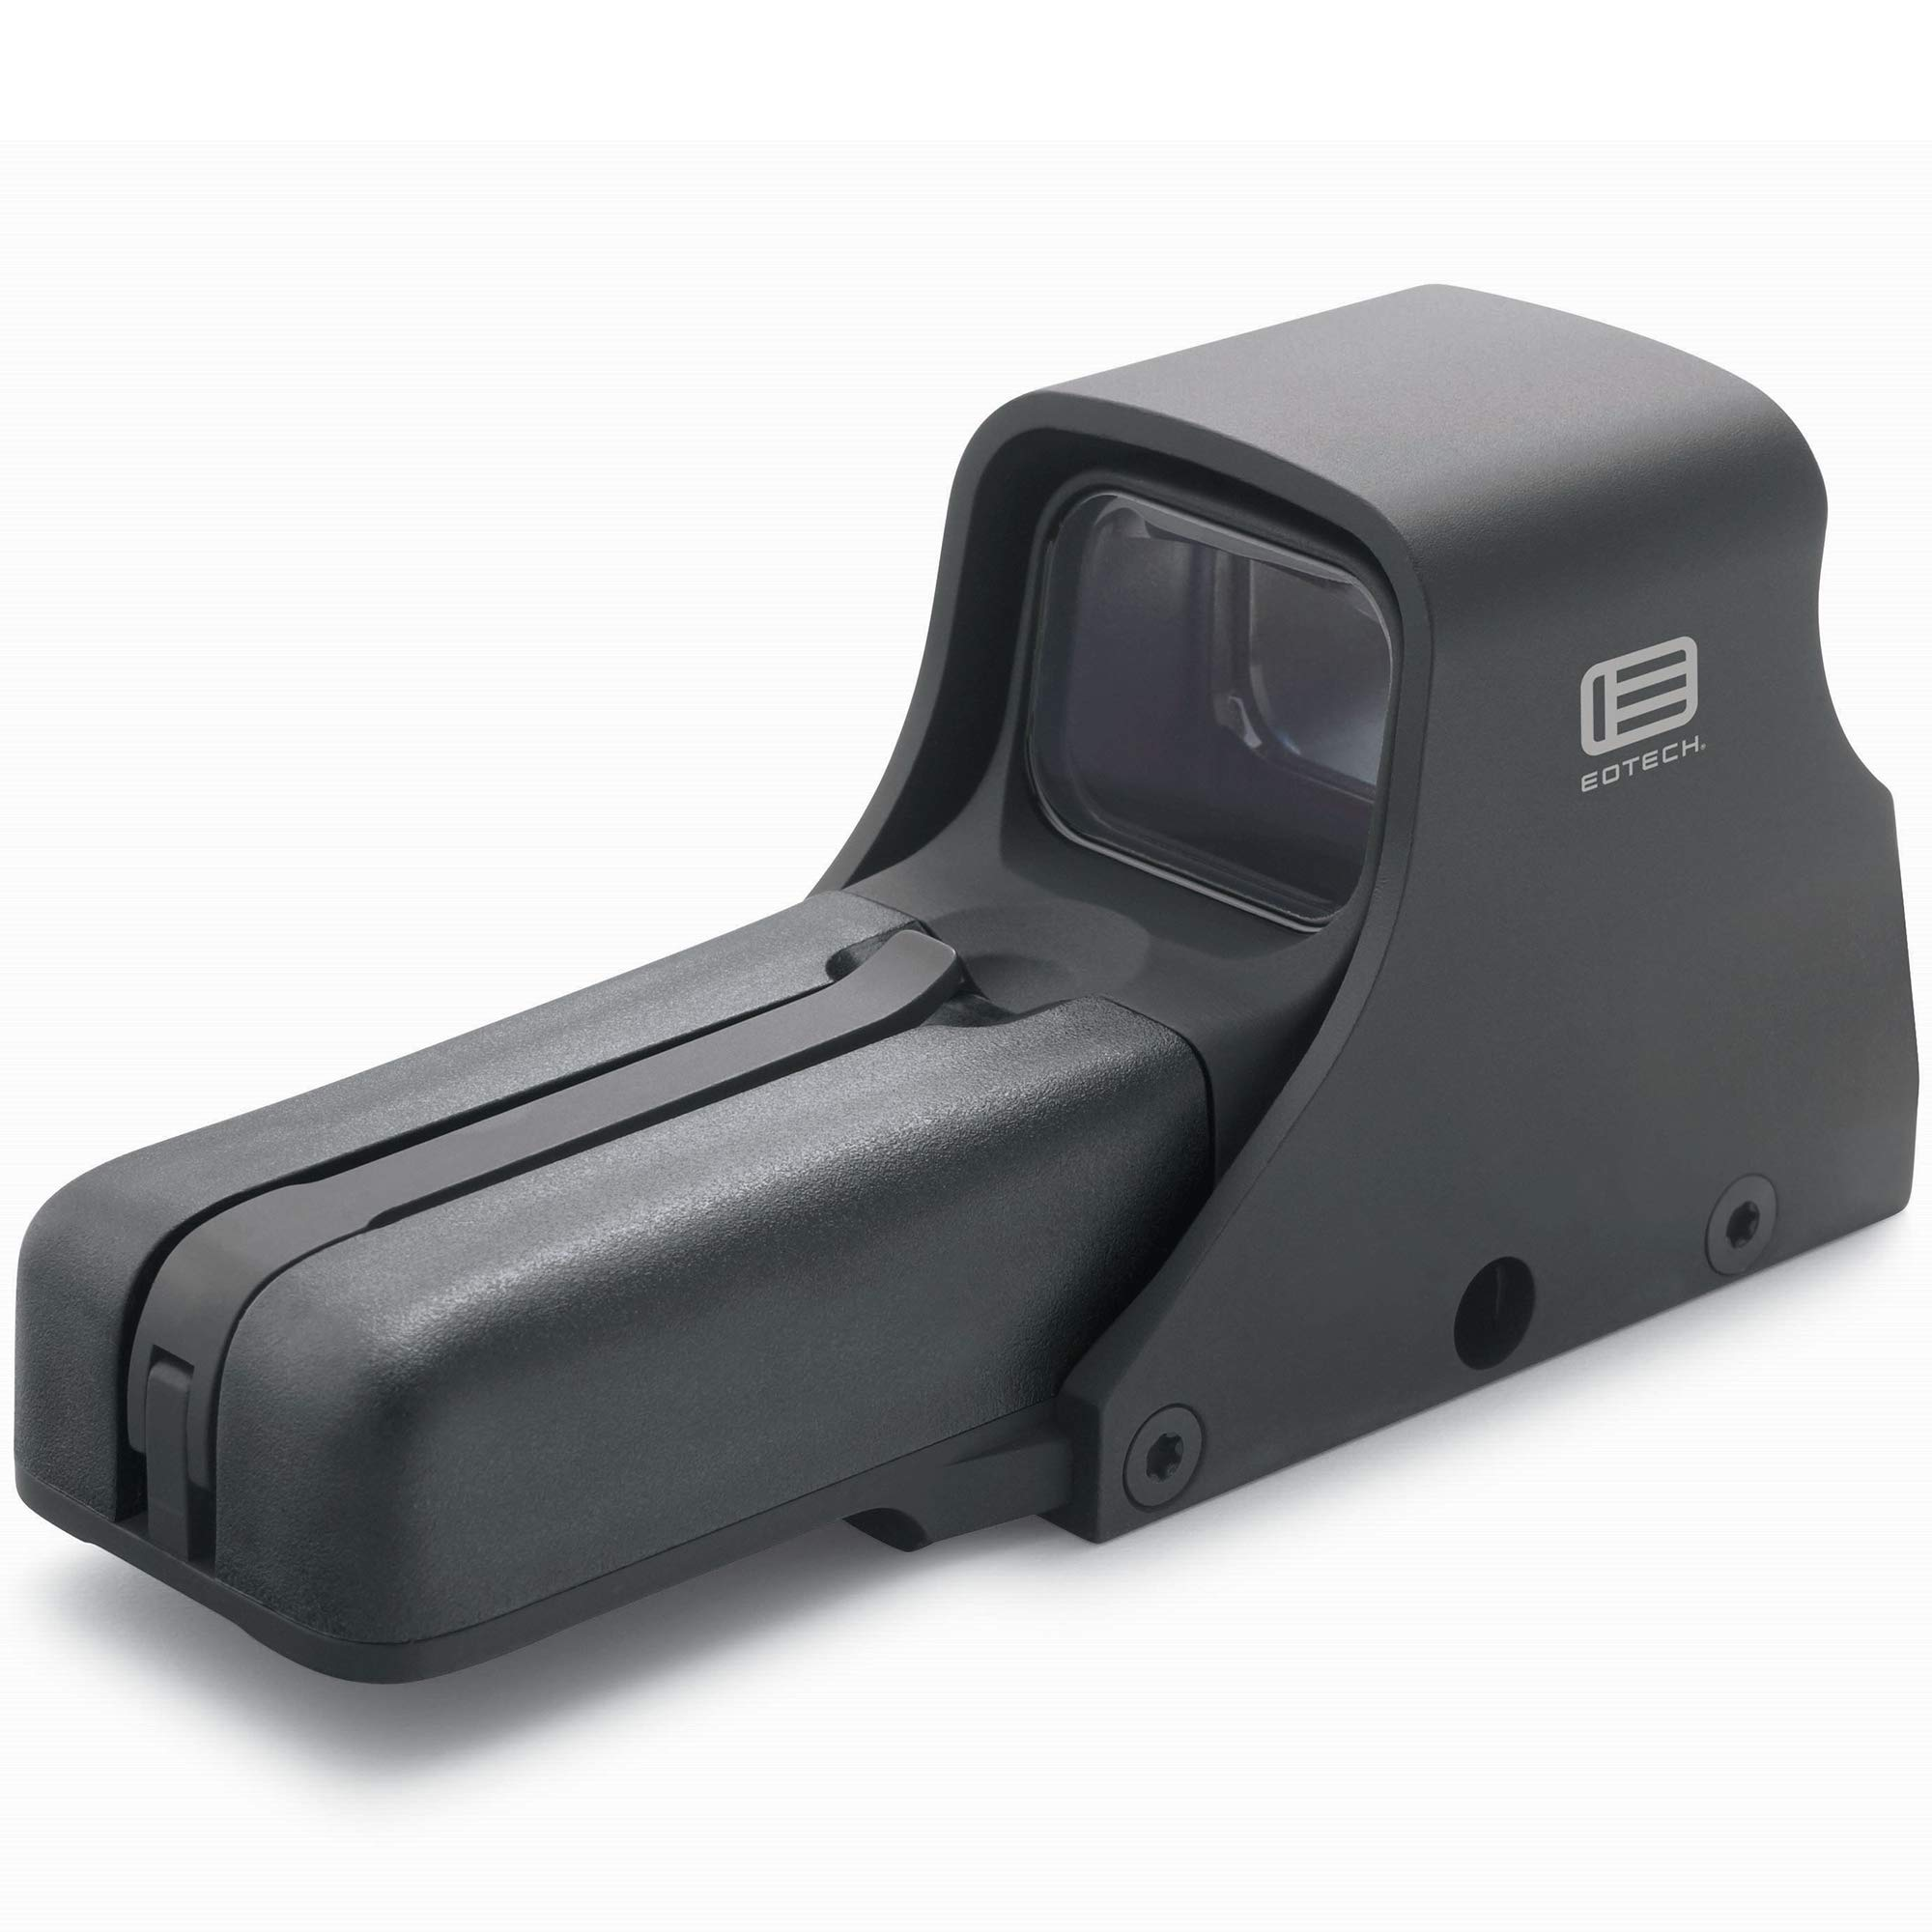 EOTECH 512 Holographic Weapon Sight by EOTECH